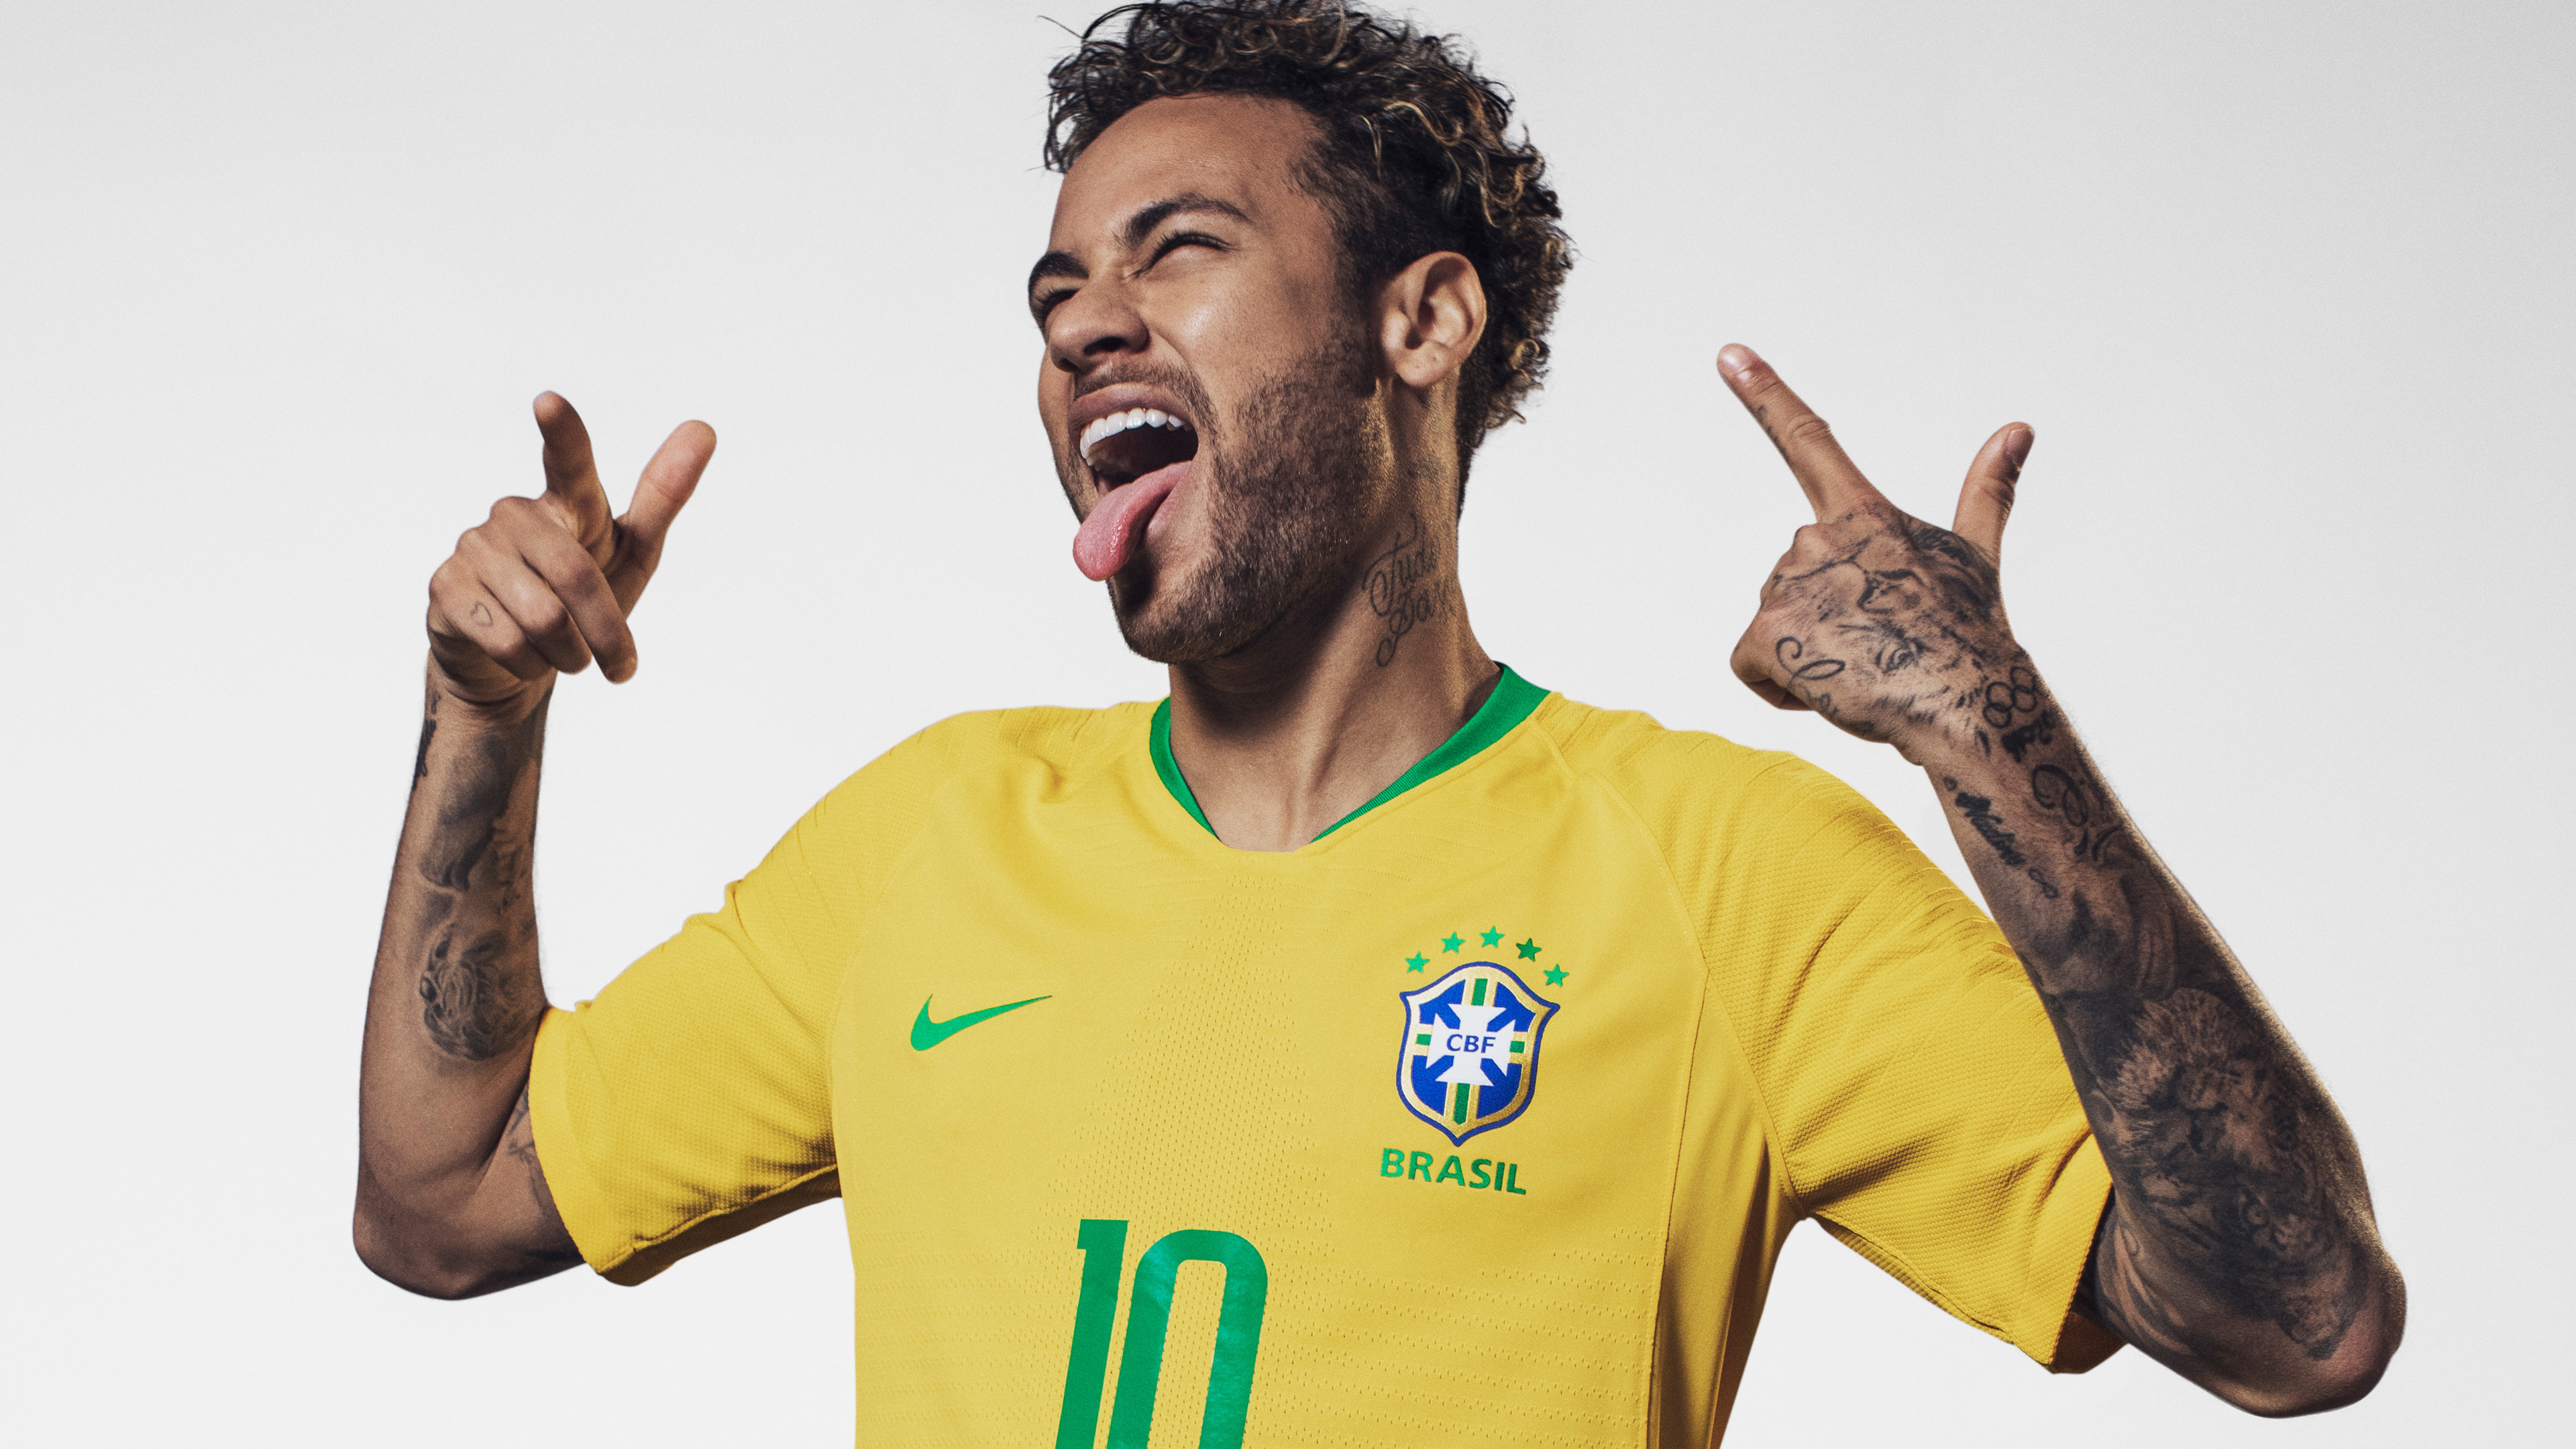 Wallpaper 4k Neymar 5k 4k Wallpapers 5k Wallpapers Boys Wallpapers Fifa World Cup Russia Wallpapers Football Wallpapers Hd Wallpapers Male Celebrities Wallpapers Neymar Jr Wallpapers Neymar Wallpapers Sports Wallpapers